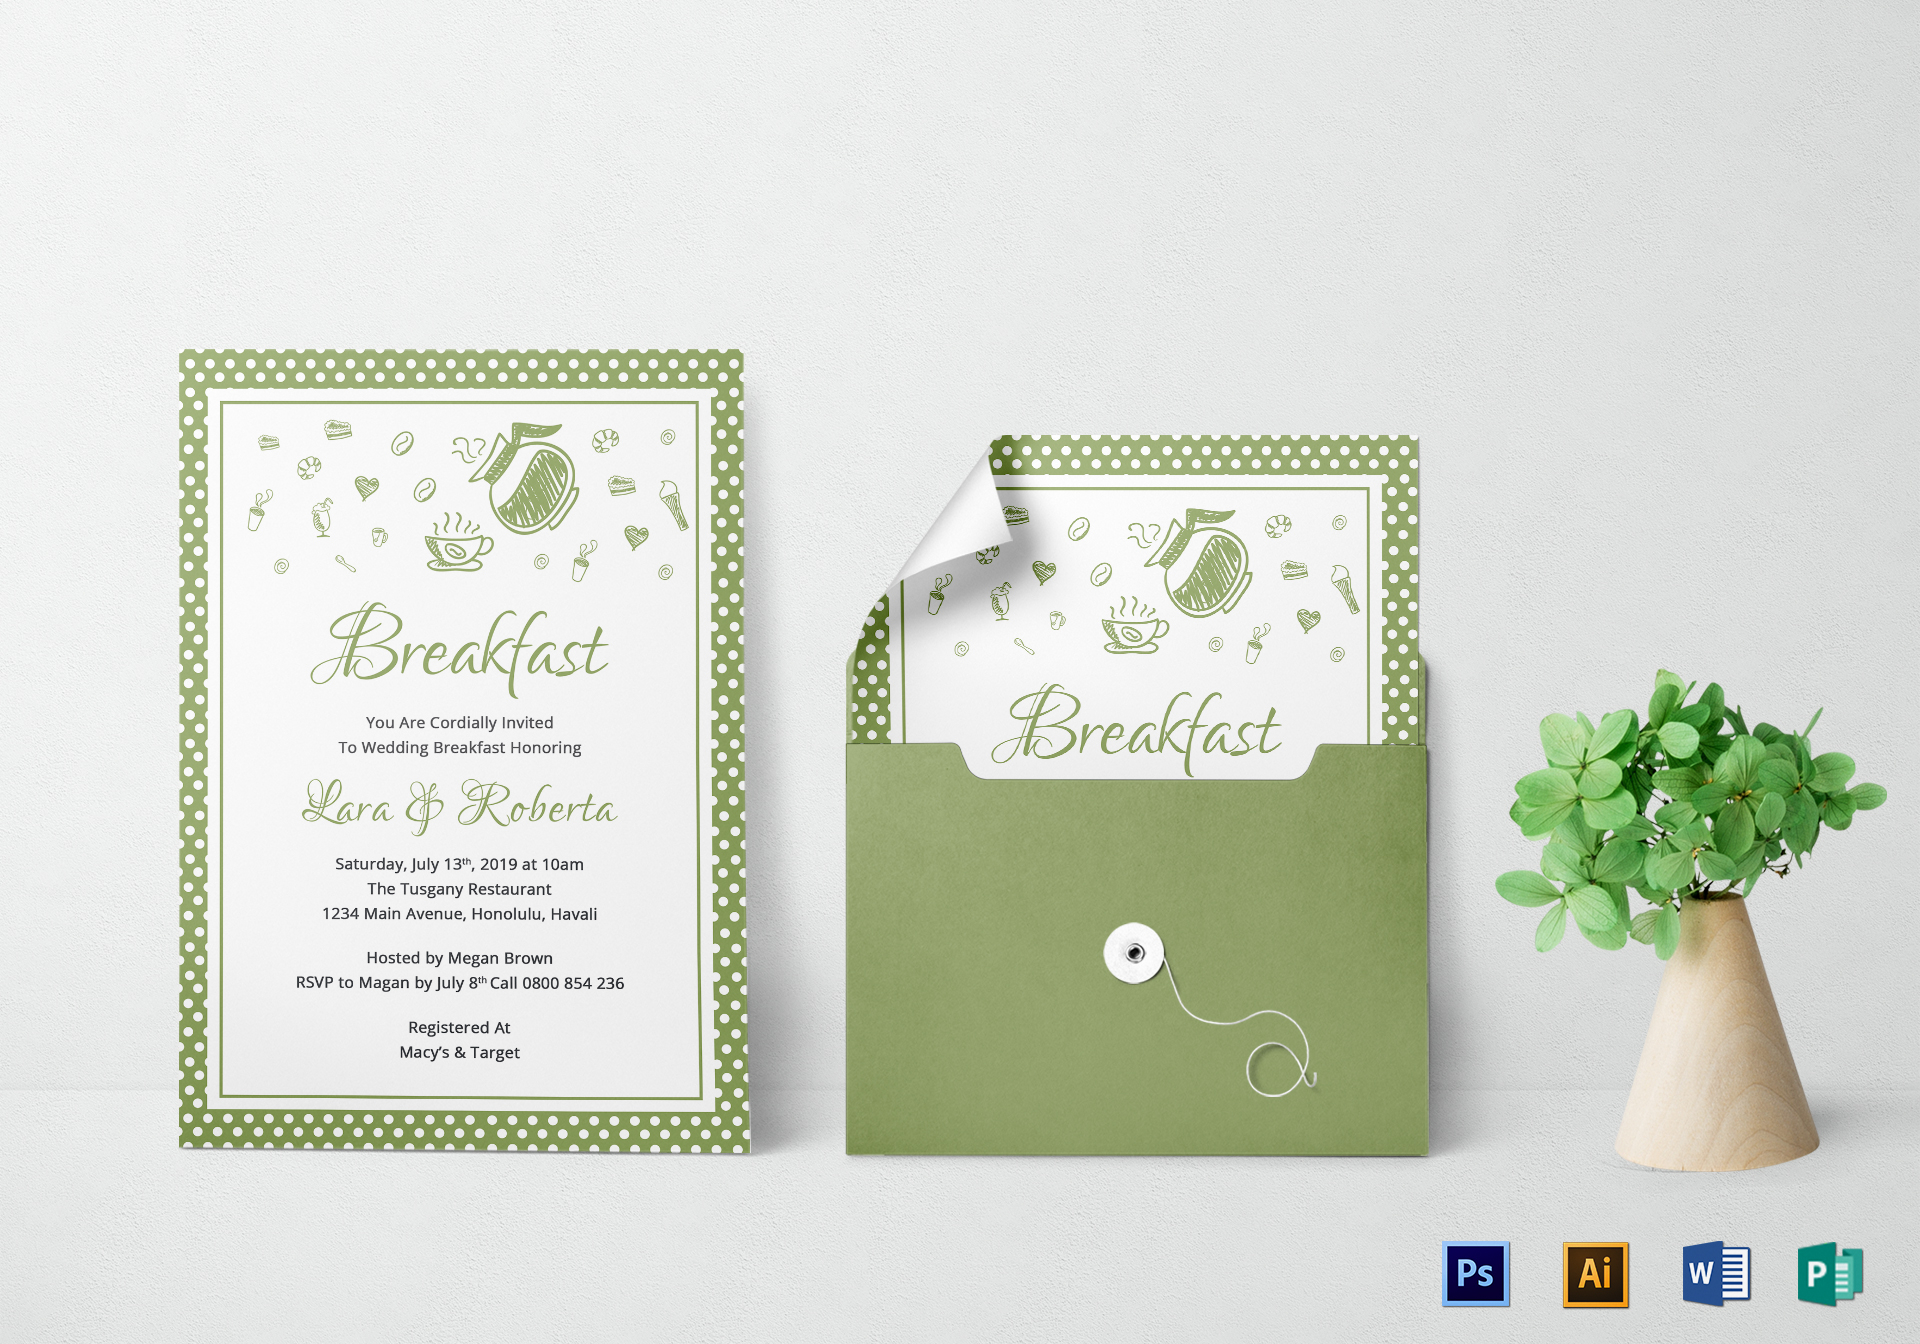 Printable Breakfast Invitation Design Template in Word PSD Publisher